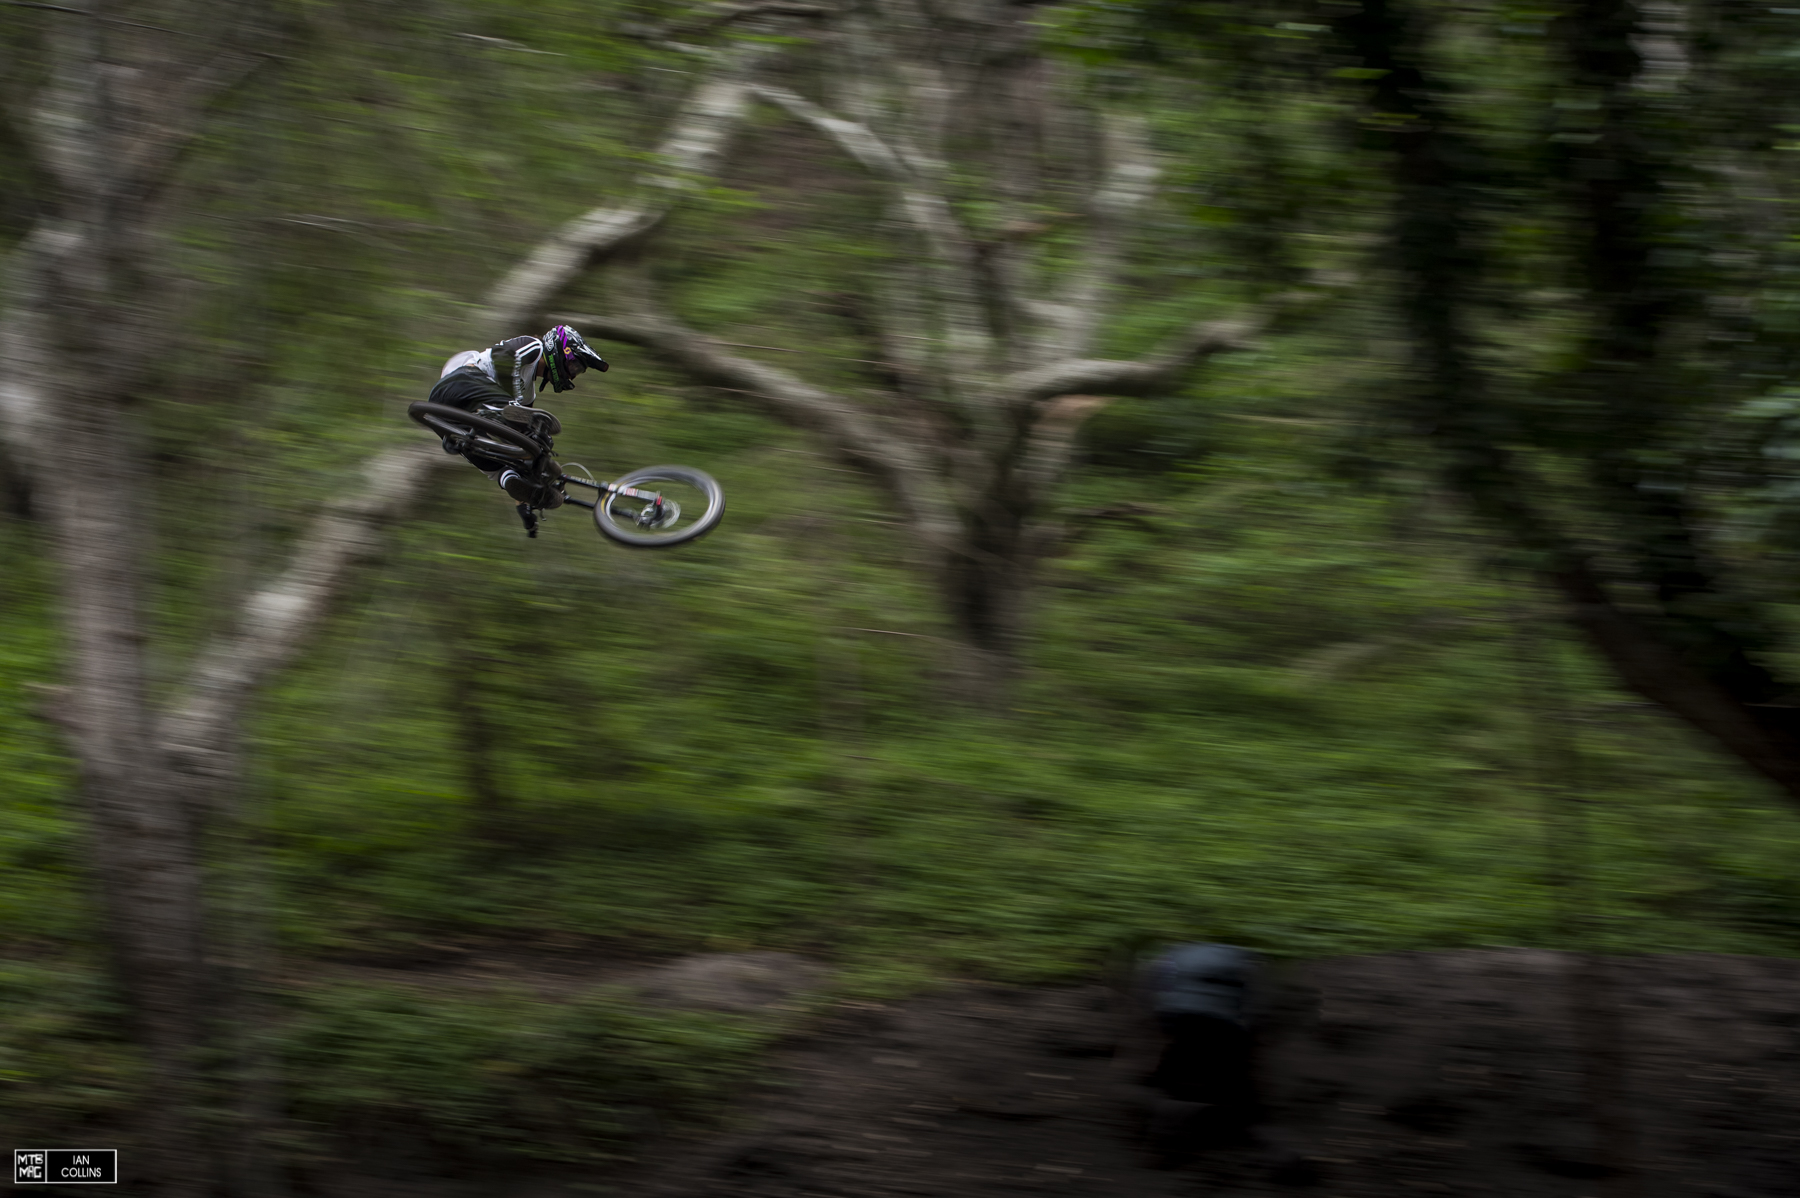 Kyle Jameson with a massive whip on a 60 foot booter that's shrouded by trees.